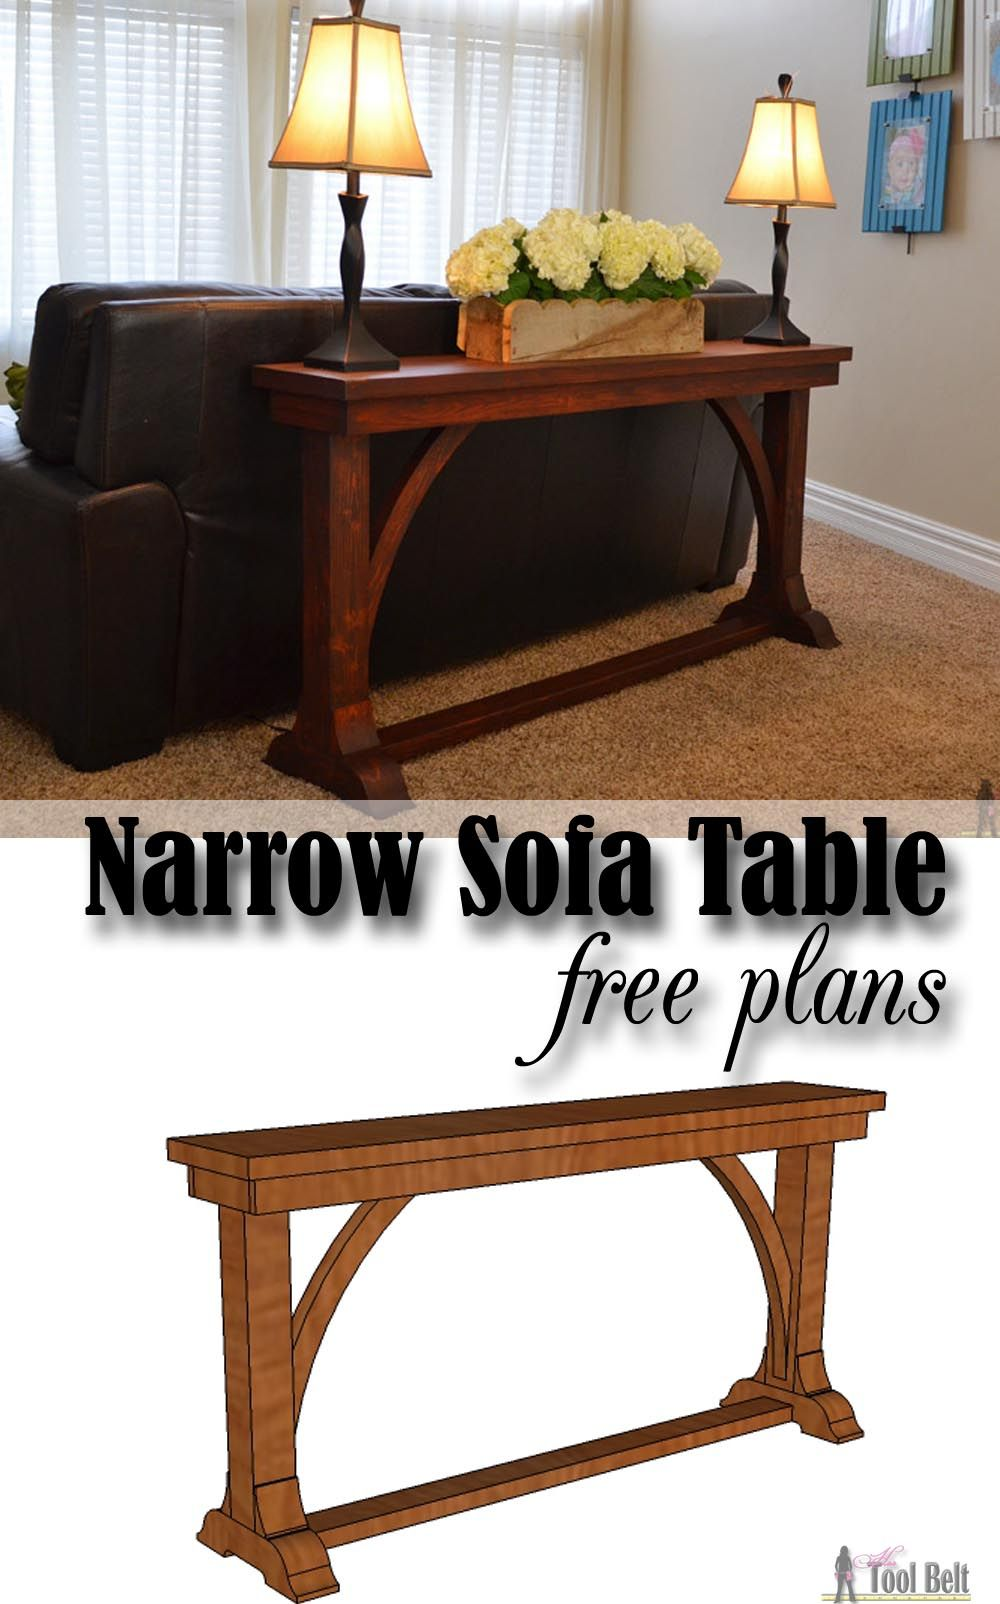 Narrow sofa table narrow sofa table and sofa tables free diy plans to build a stylish narrow sofa table for about 30 geotapseo Image collections